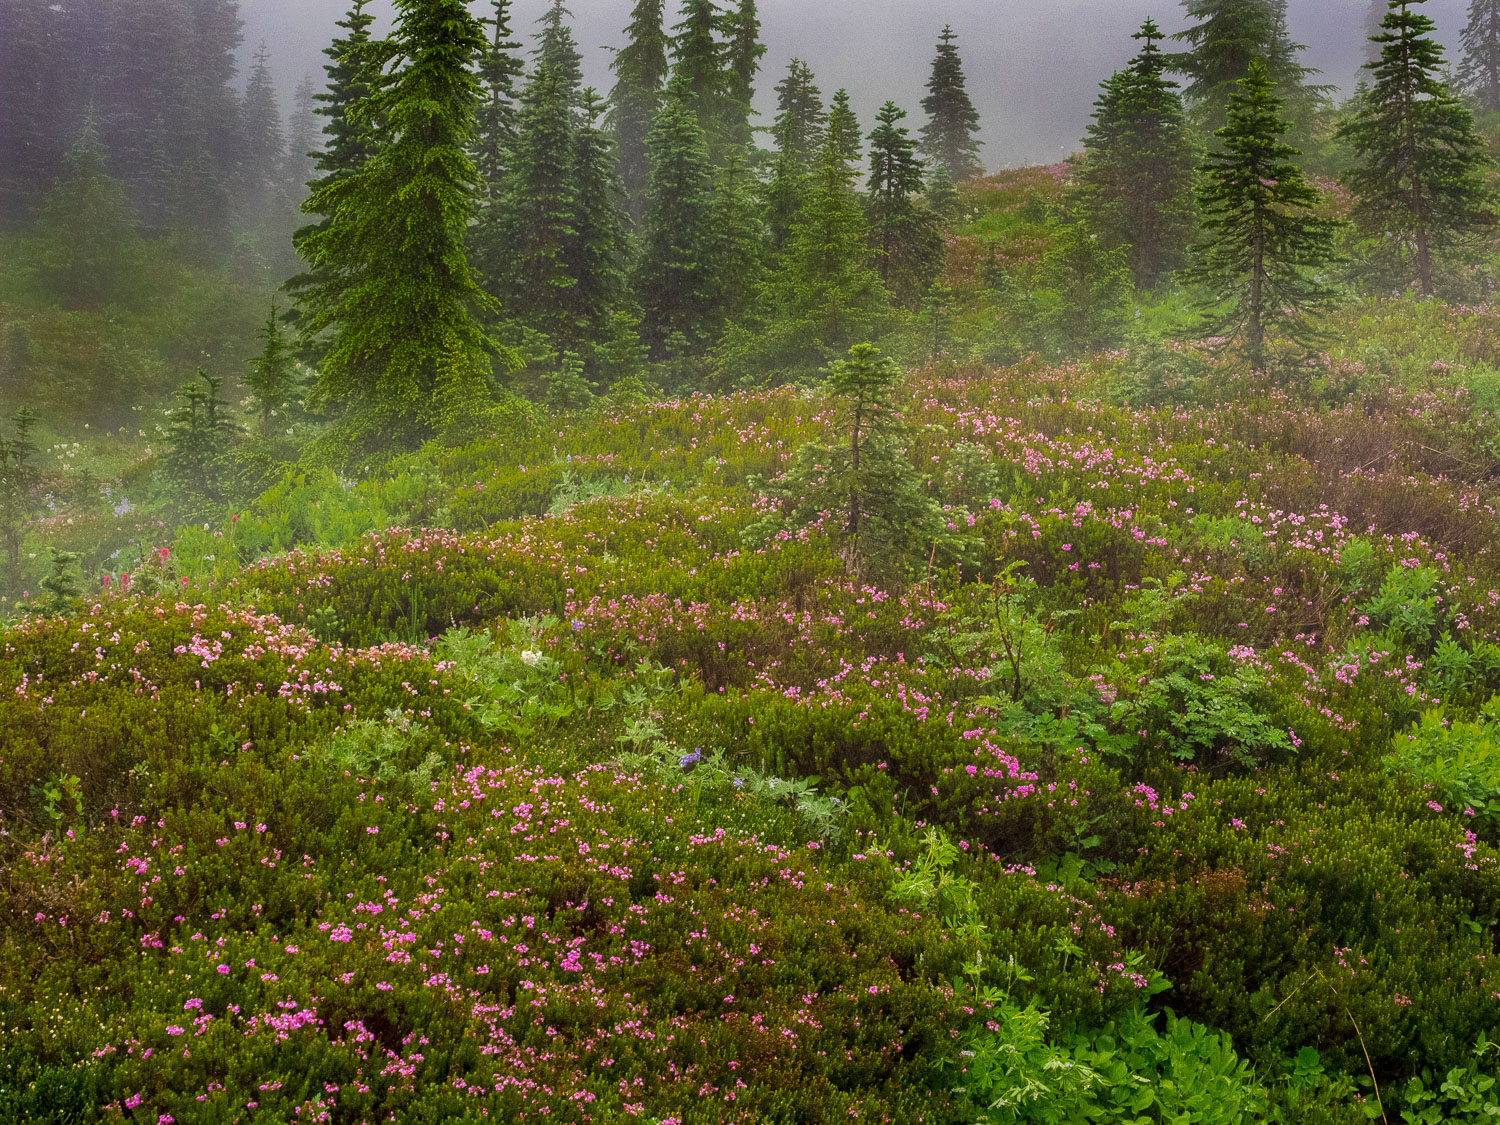 Mountain Heather and Fir Trees in Meadow on a rainy day at Parad